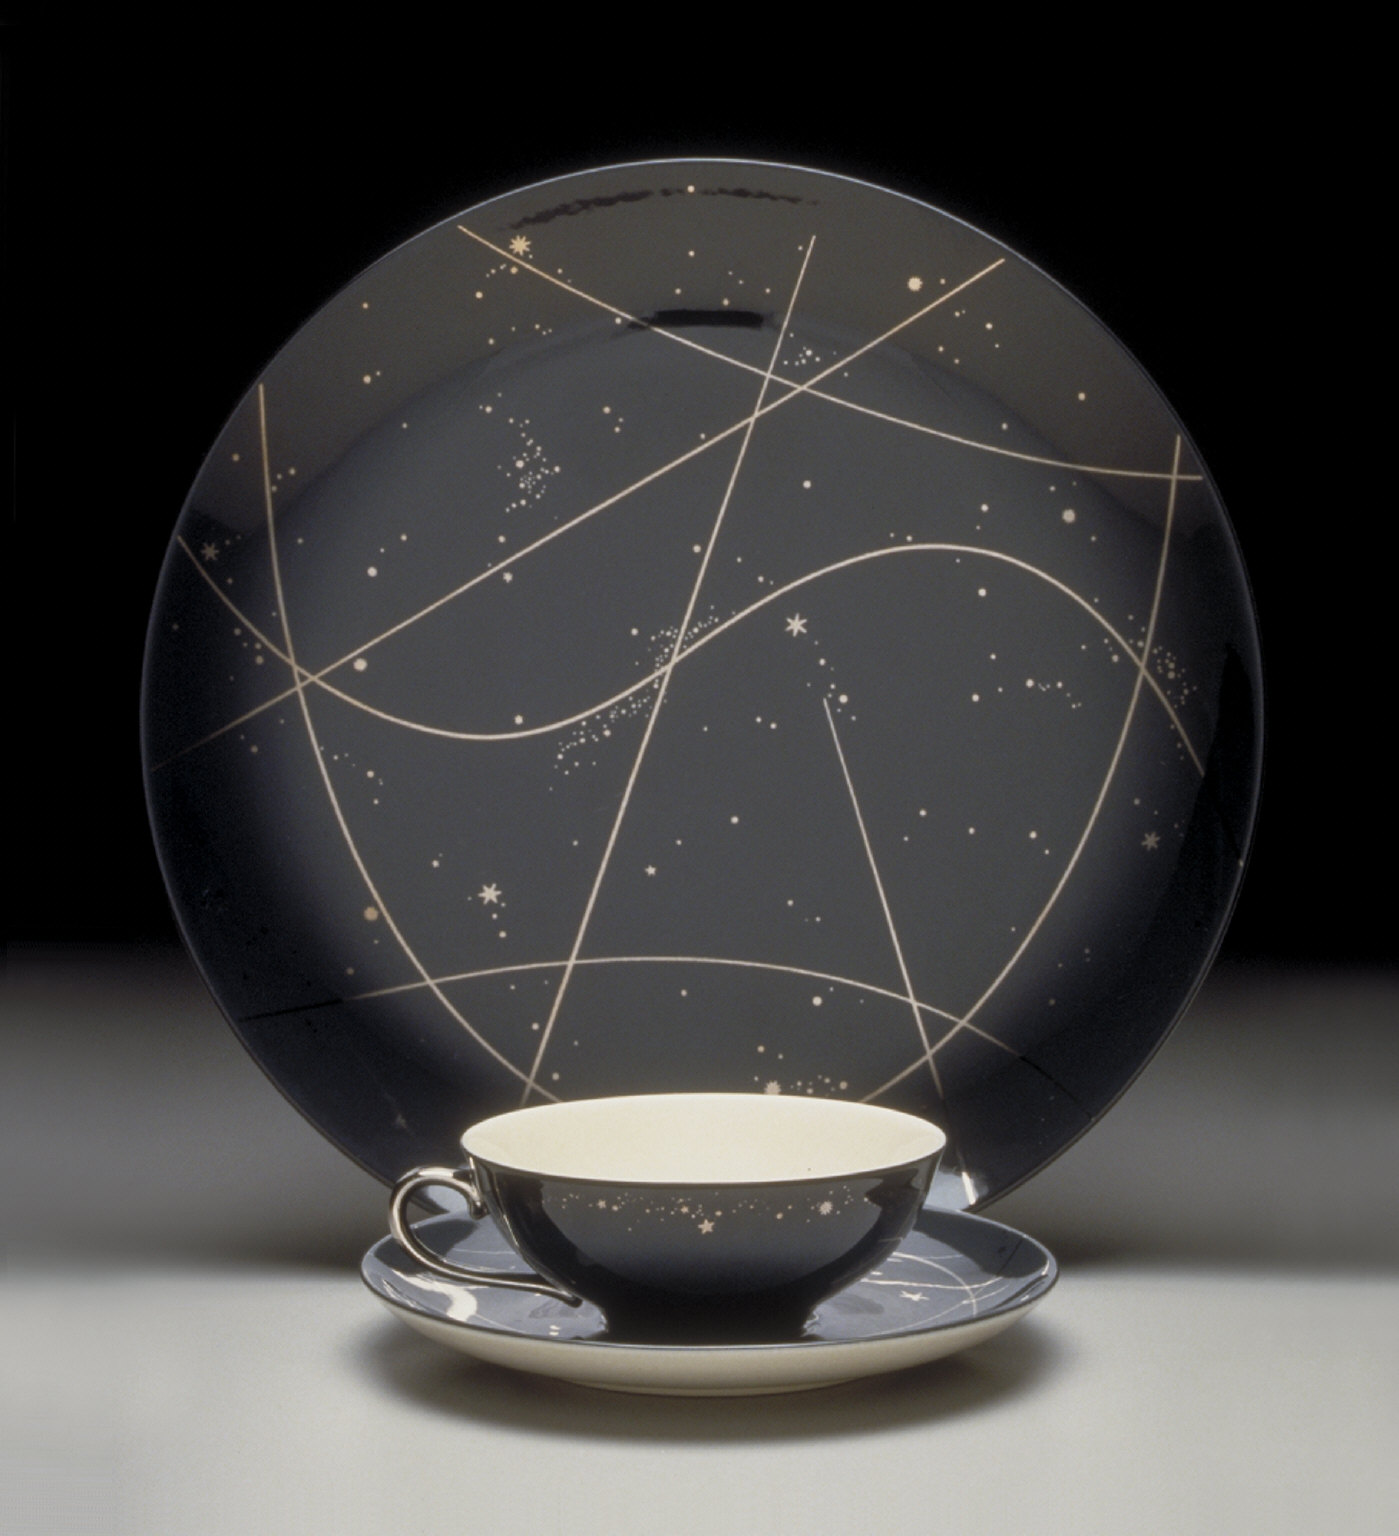 'Encanto' shape plate with 'Starry Night' pattern